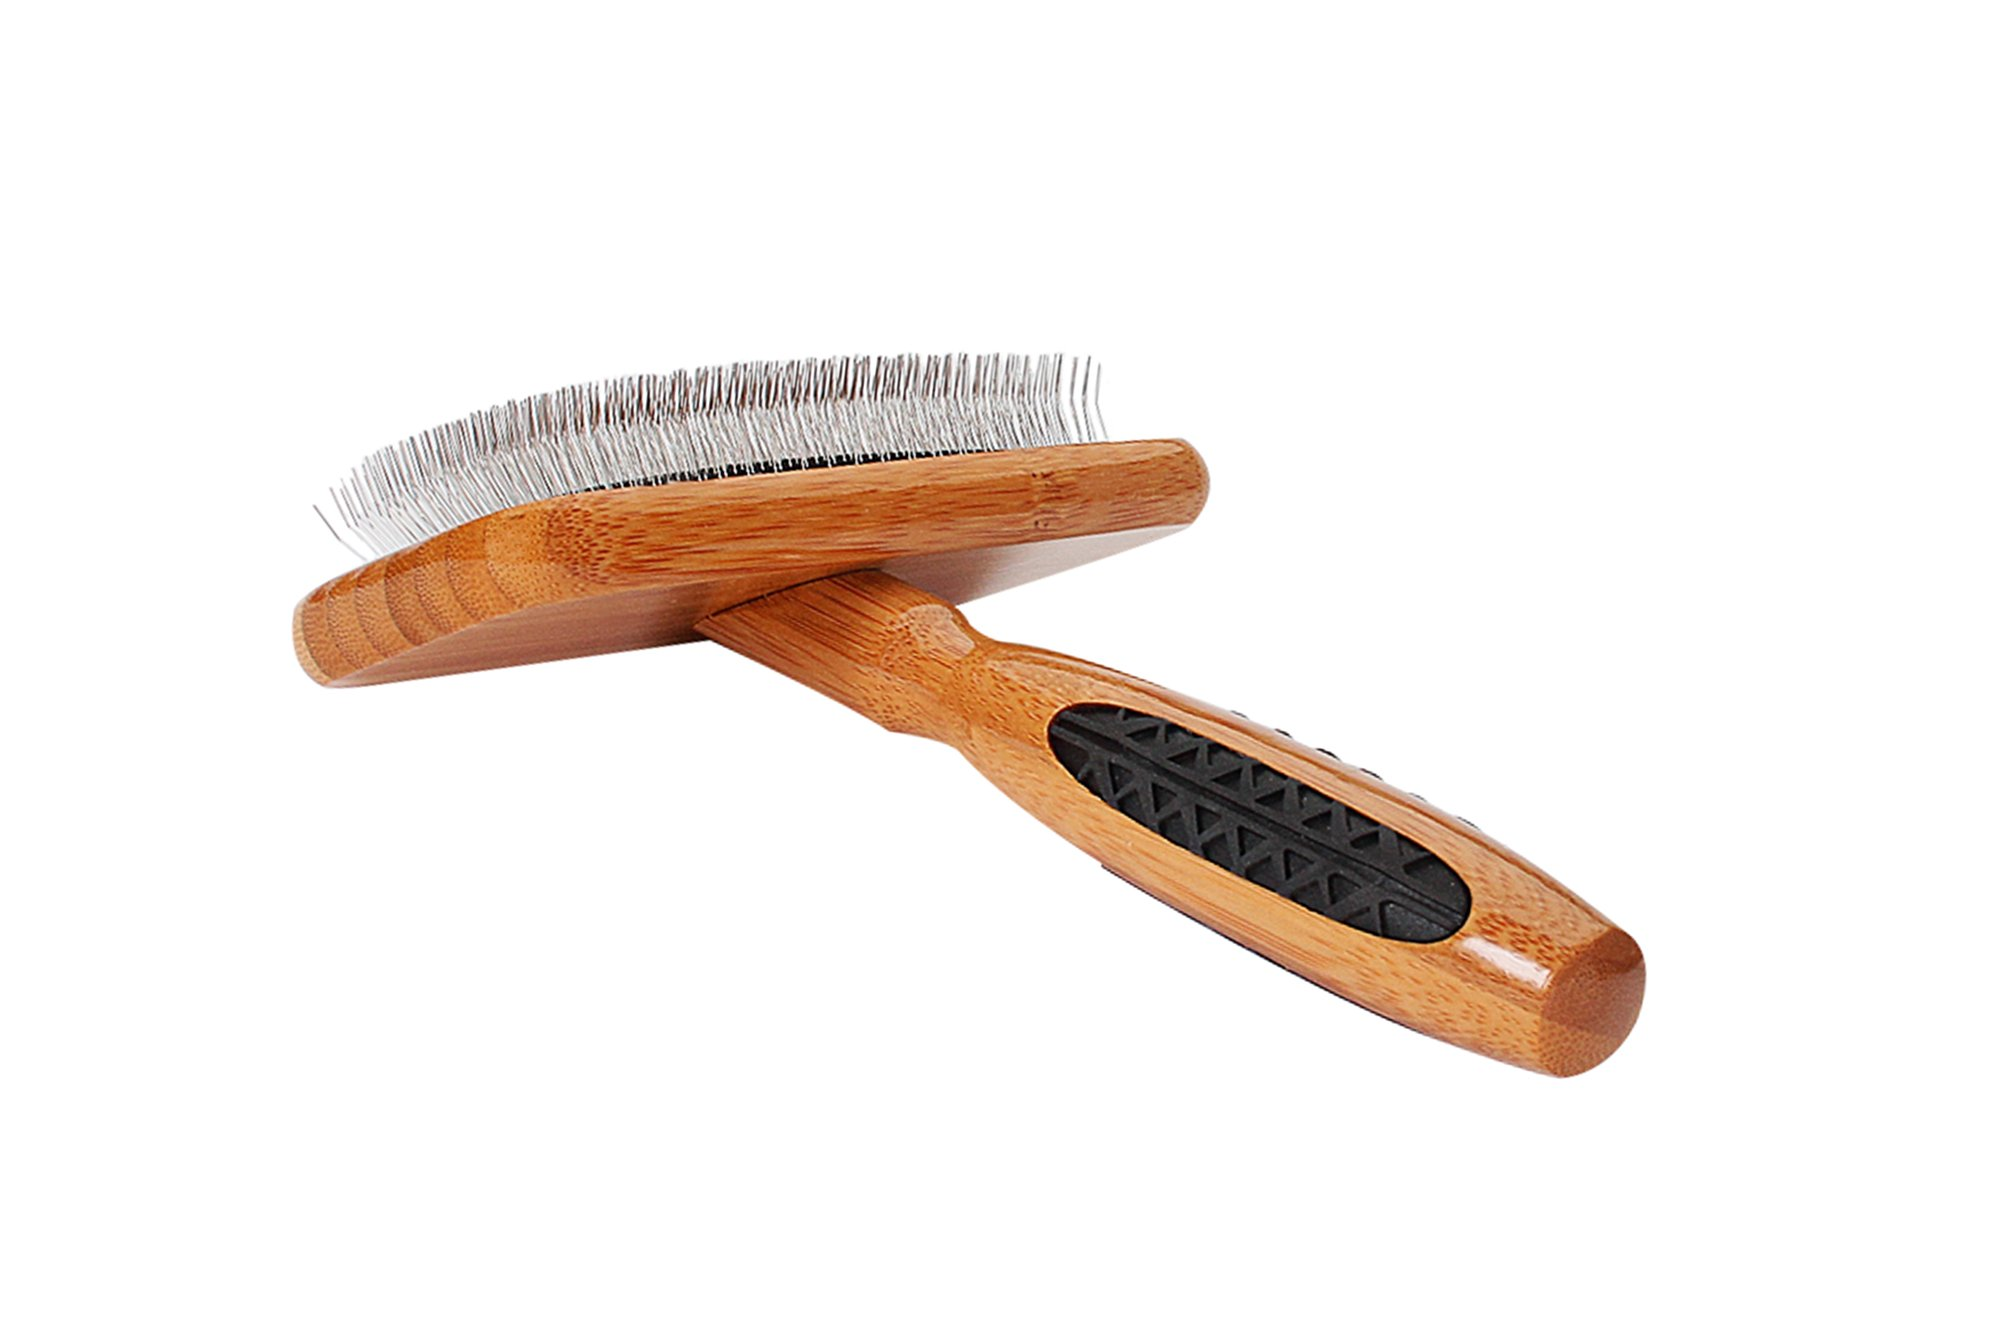 Bass Brushes Soft Slicker Pet Brush with Bamboo Handle and Rubber Grips